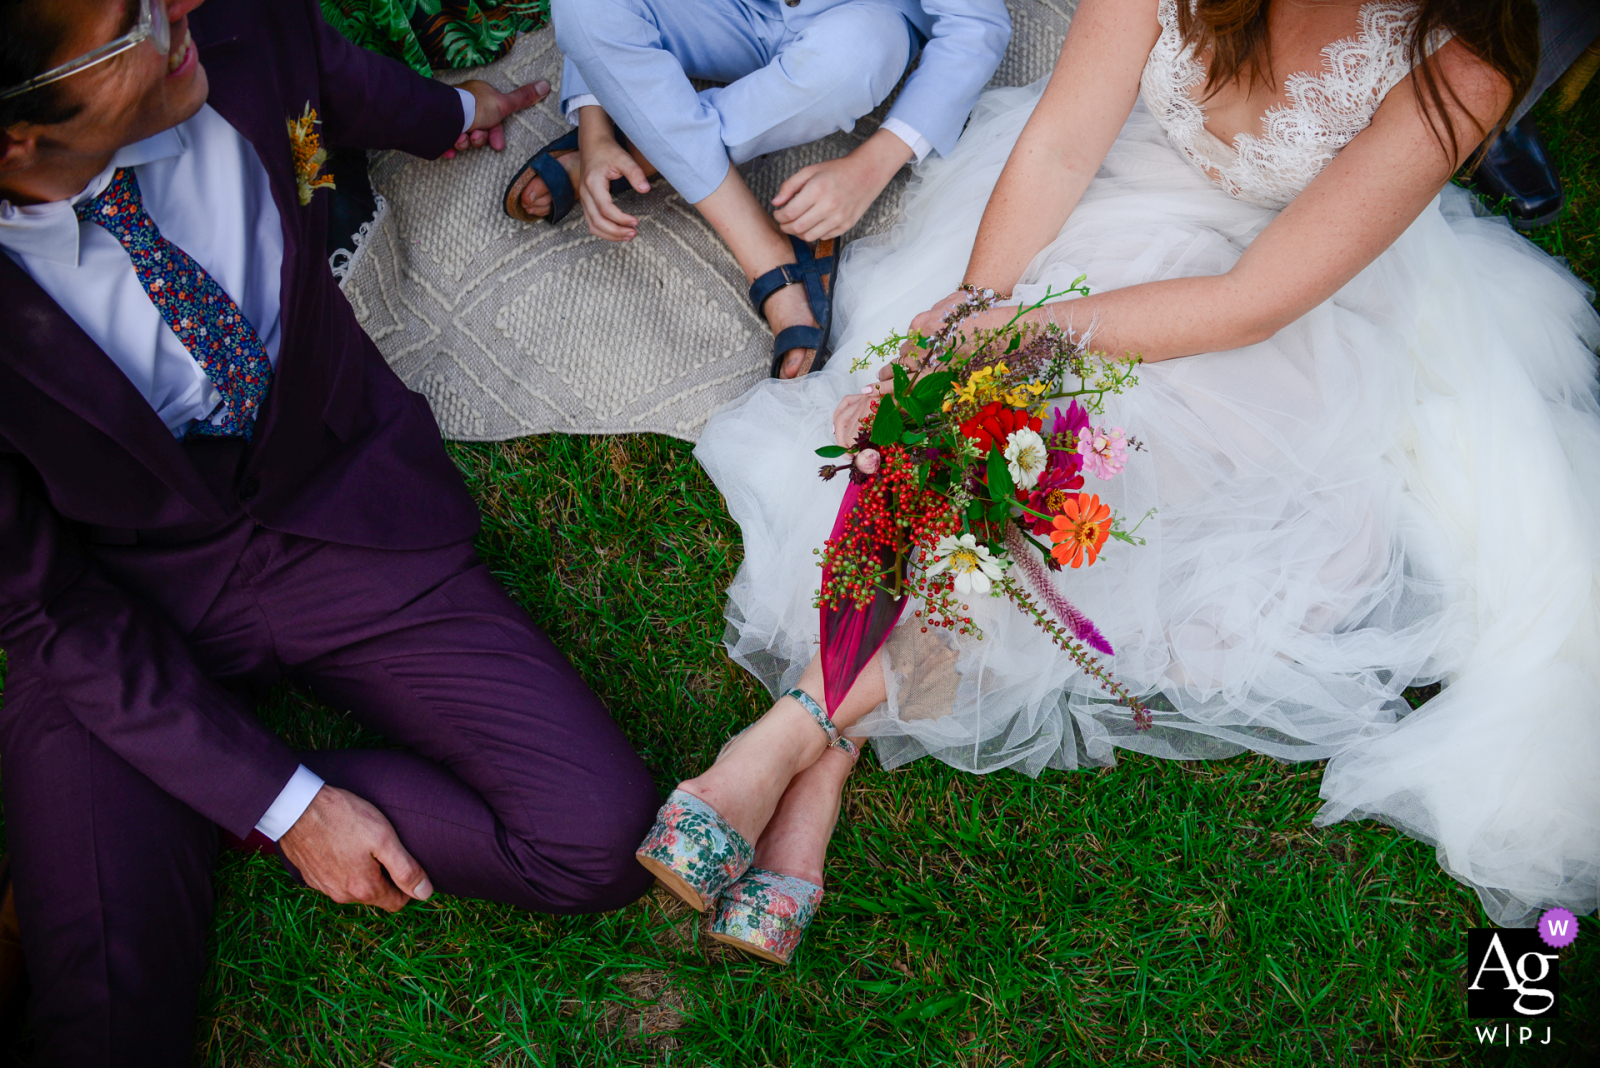 Sow Exotic Farm in Winter Haven, FL fine art wedding bride flowers detail image showing the Family relaxing together right after ceremony